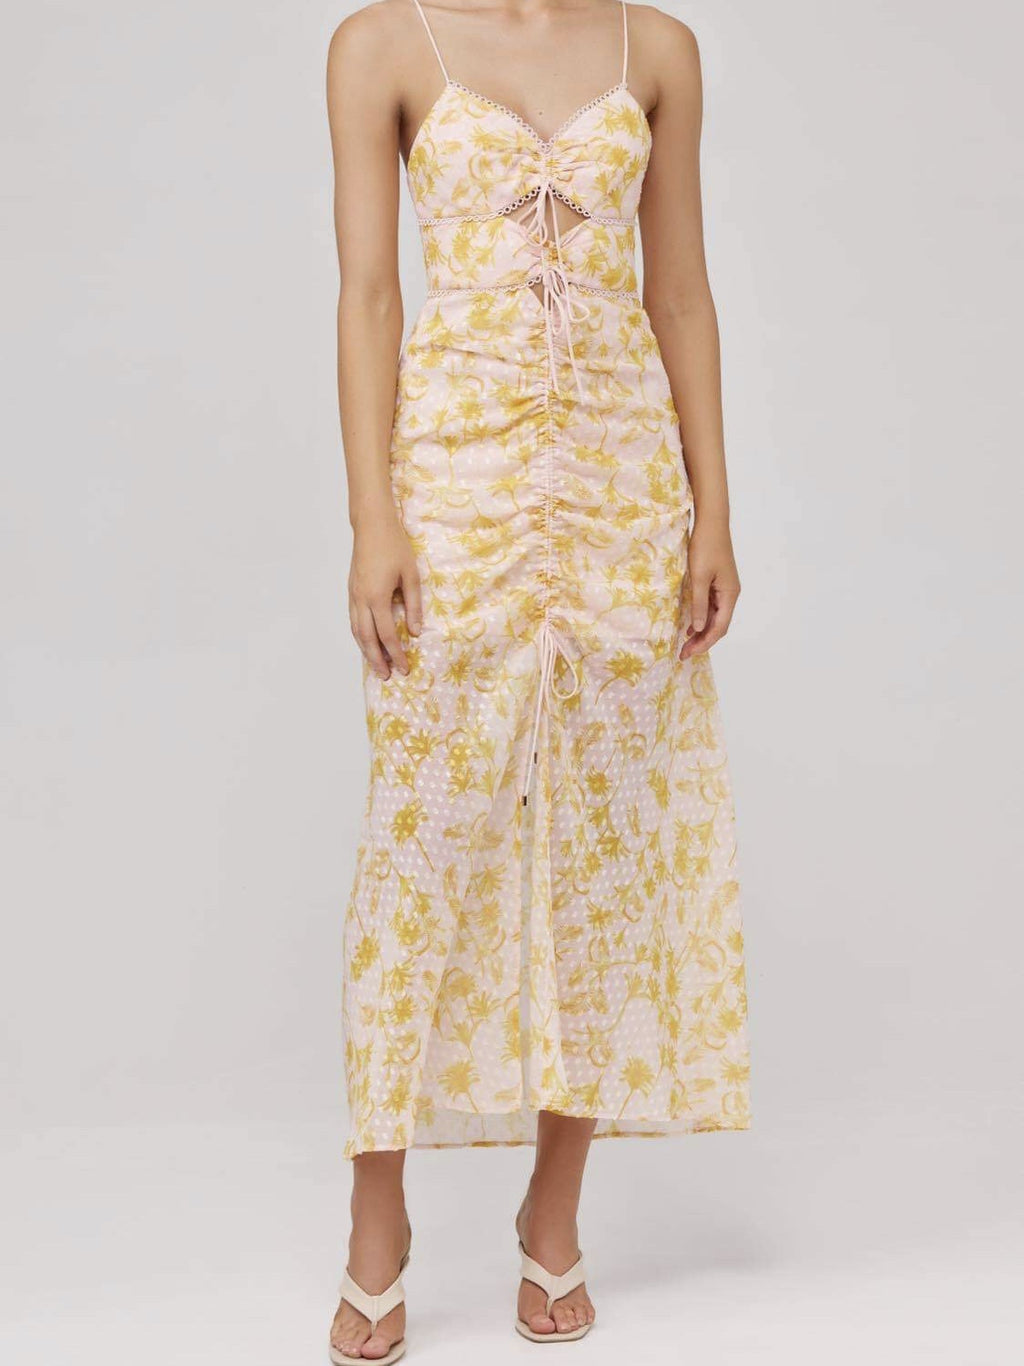 Angelina Dress - Pineapple Palm